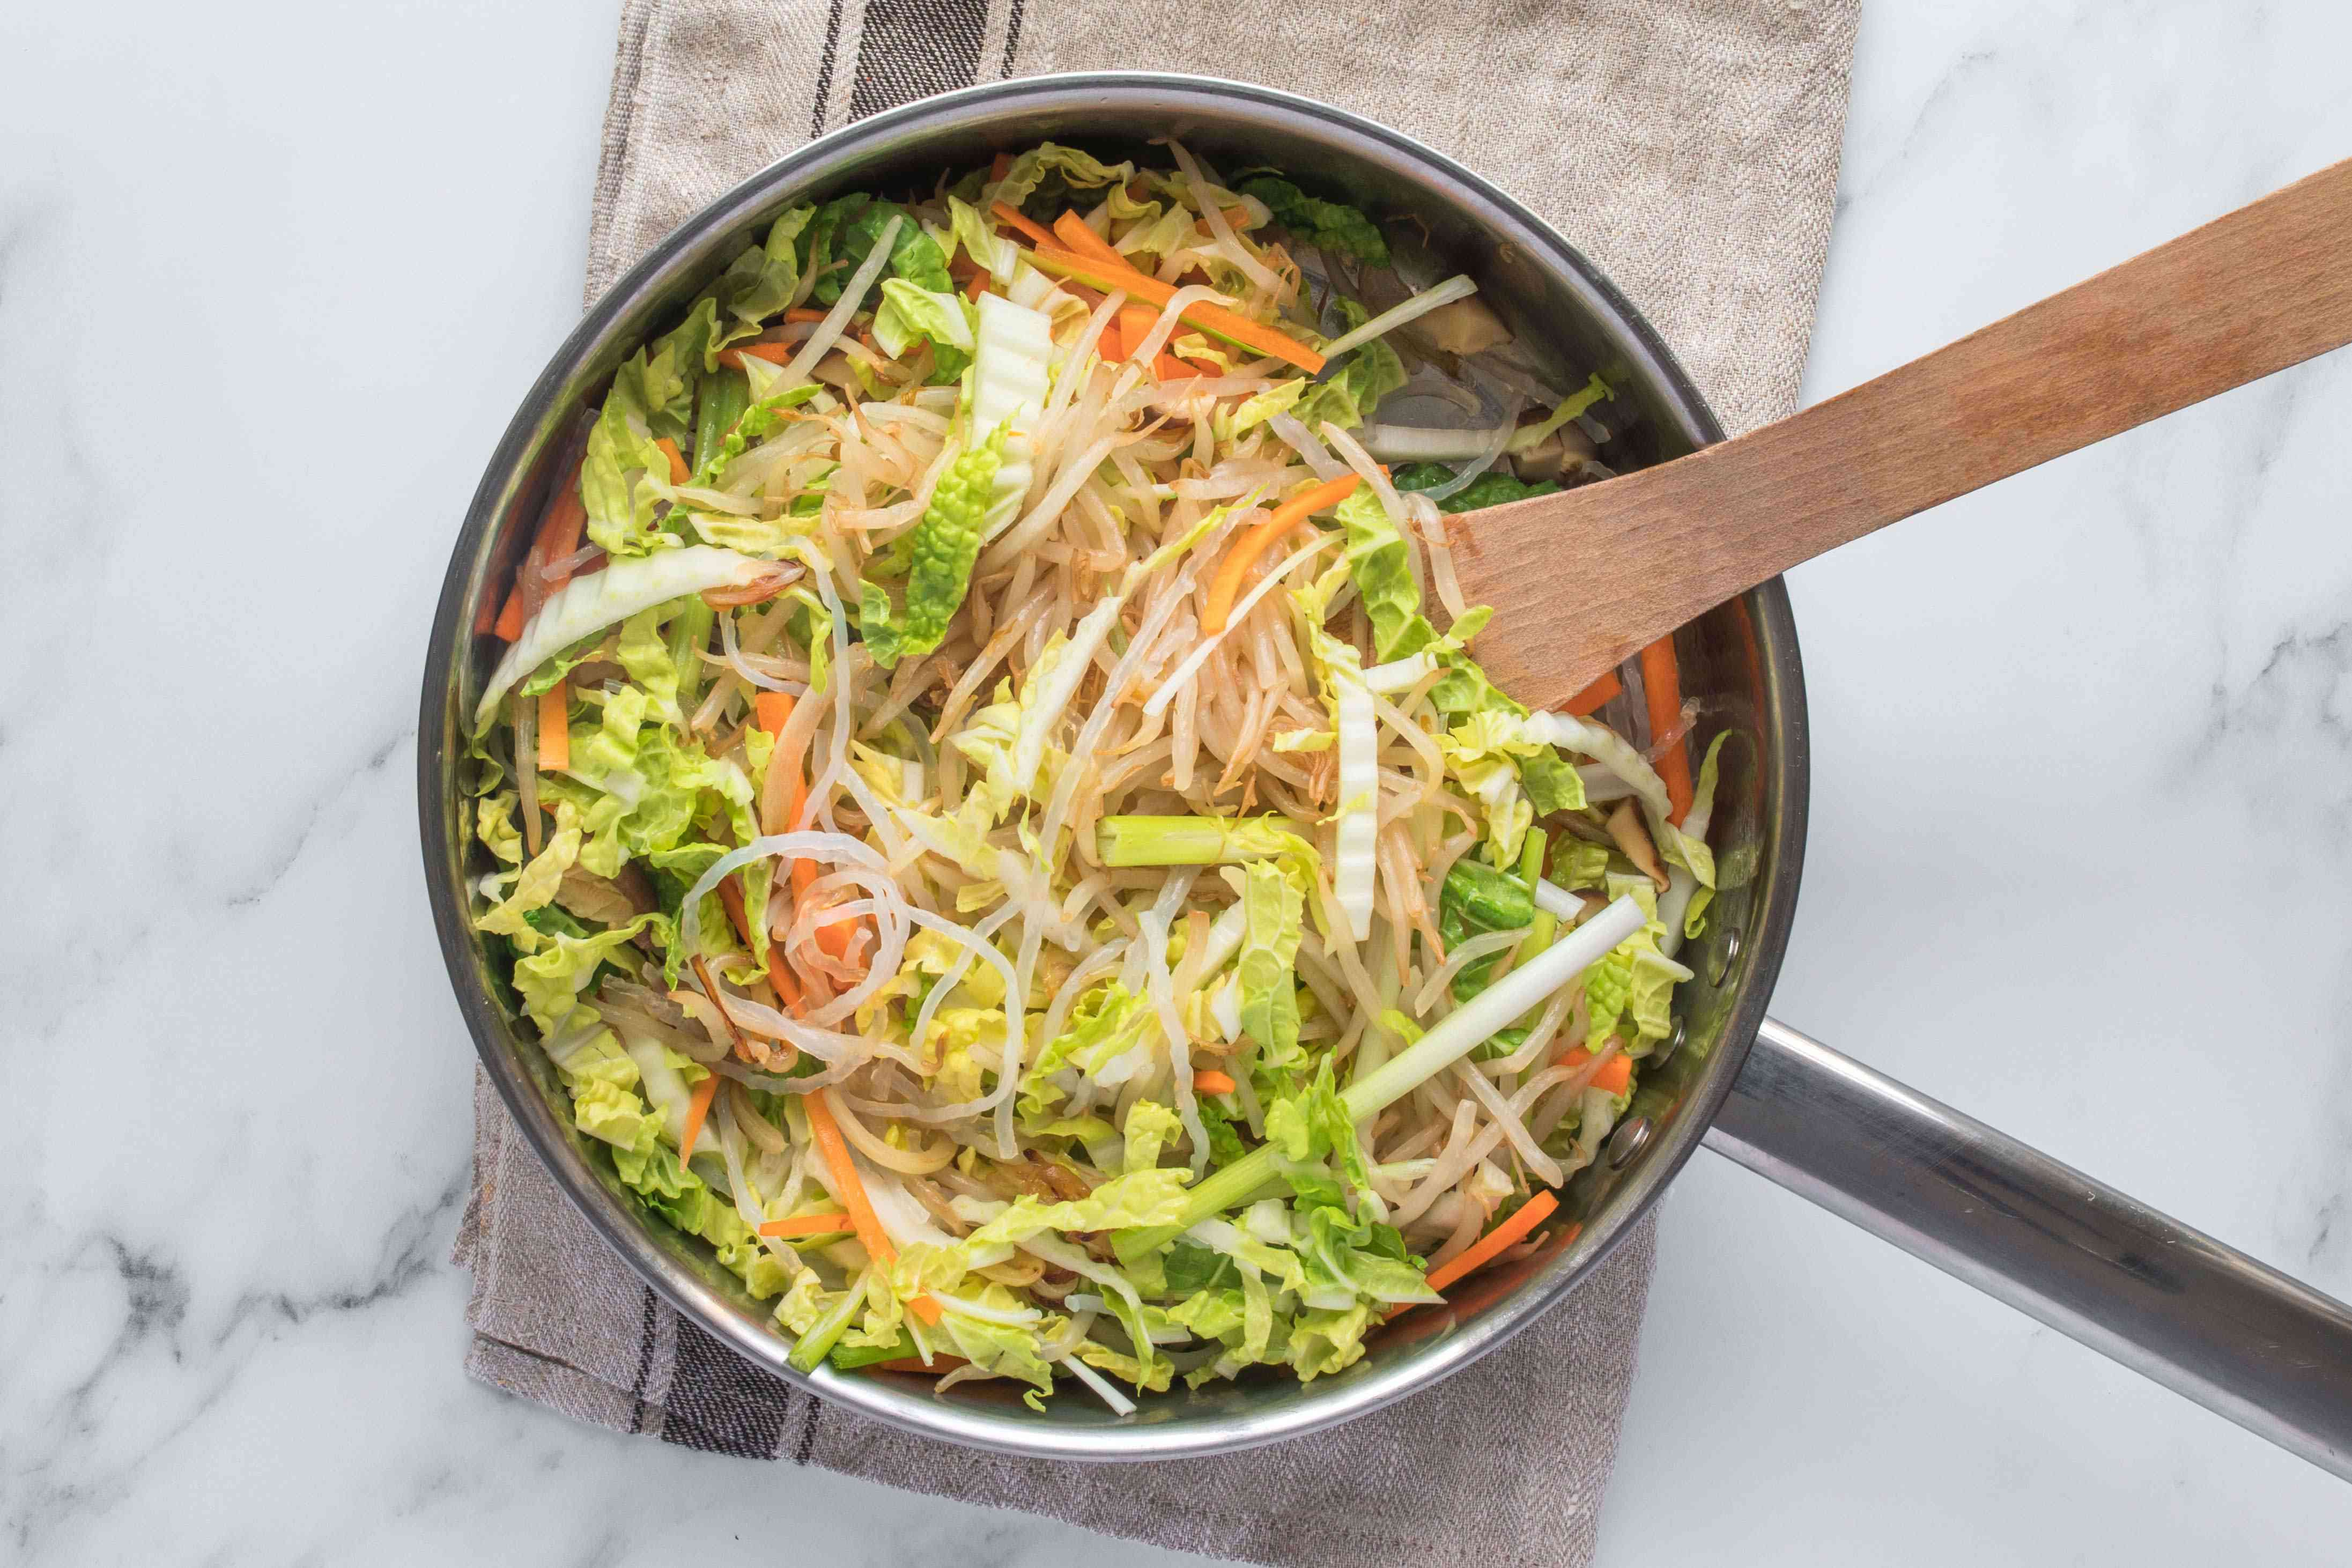 Vegetables and noodles in a pan